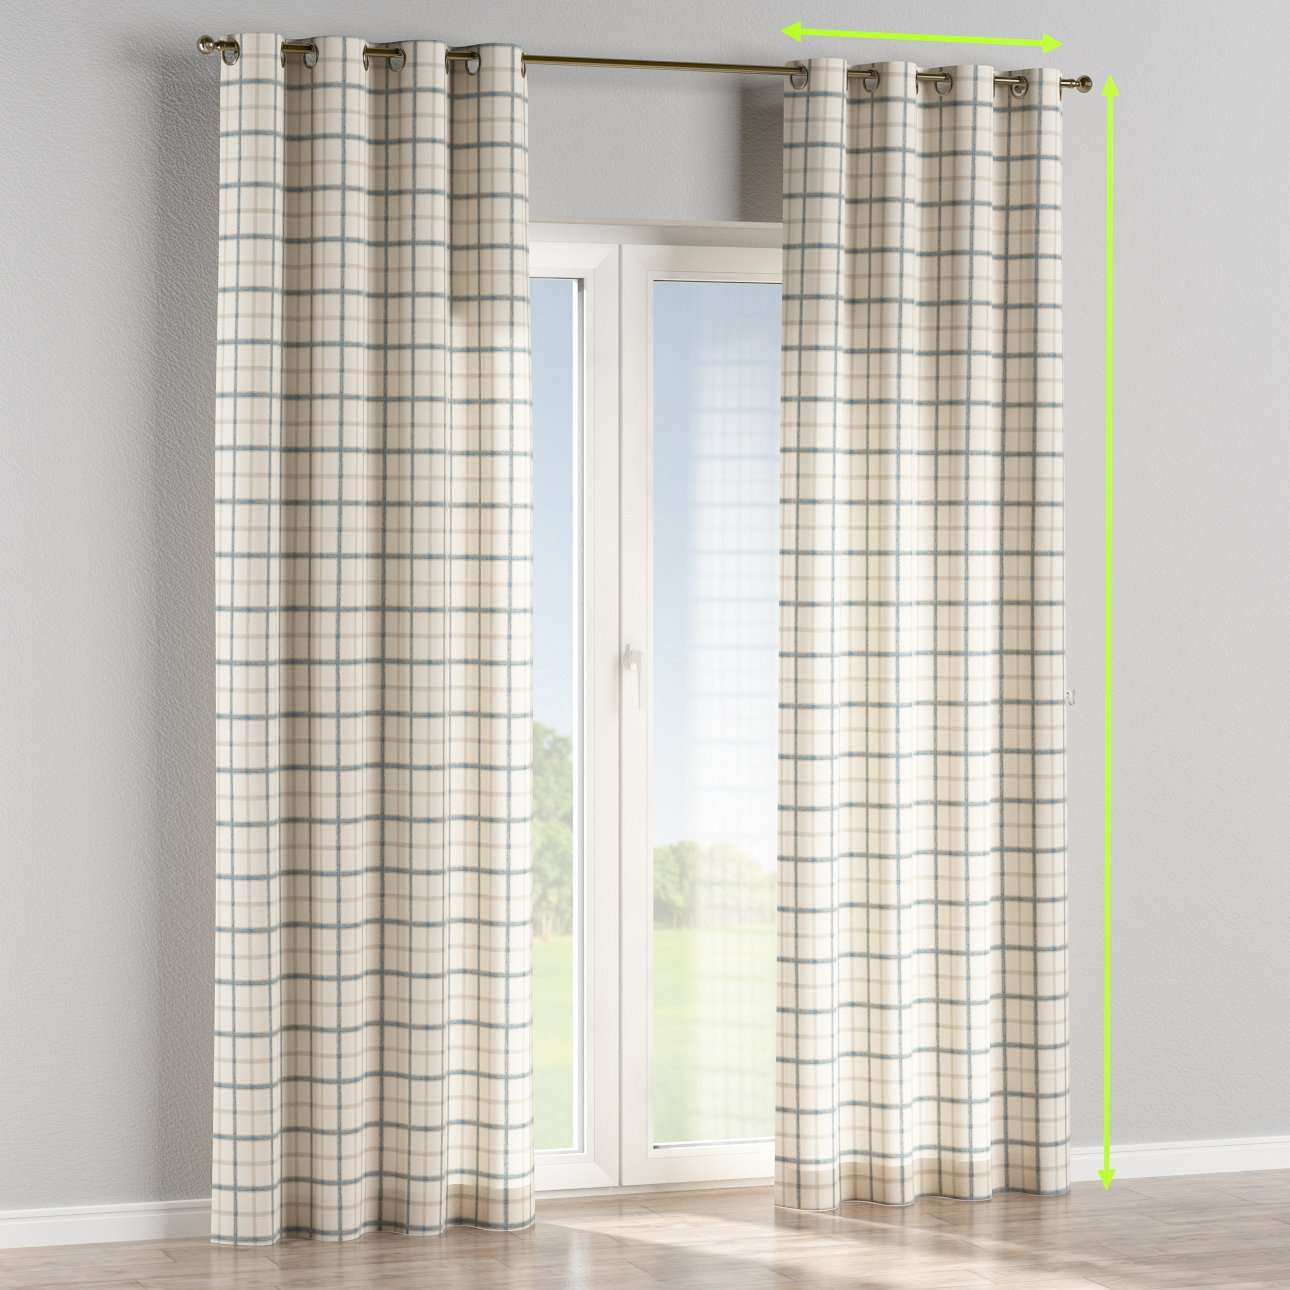 Eyelet lined curtains in collection Avinon, fabric: 131-66